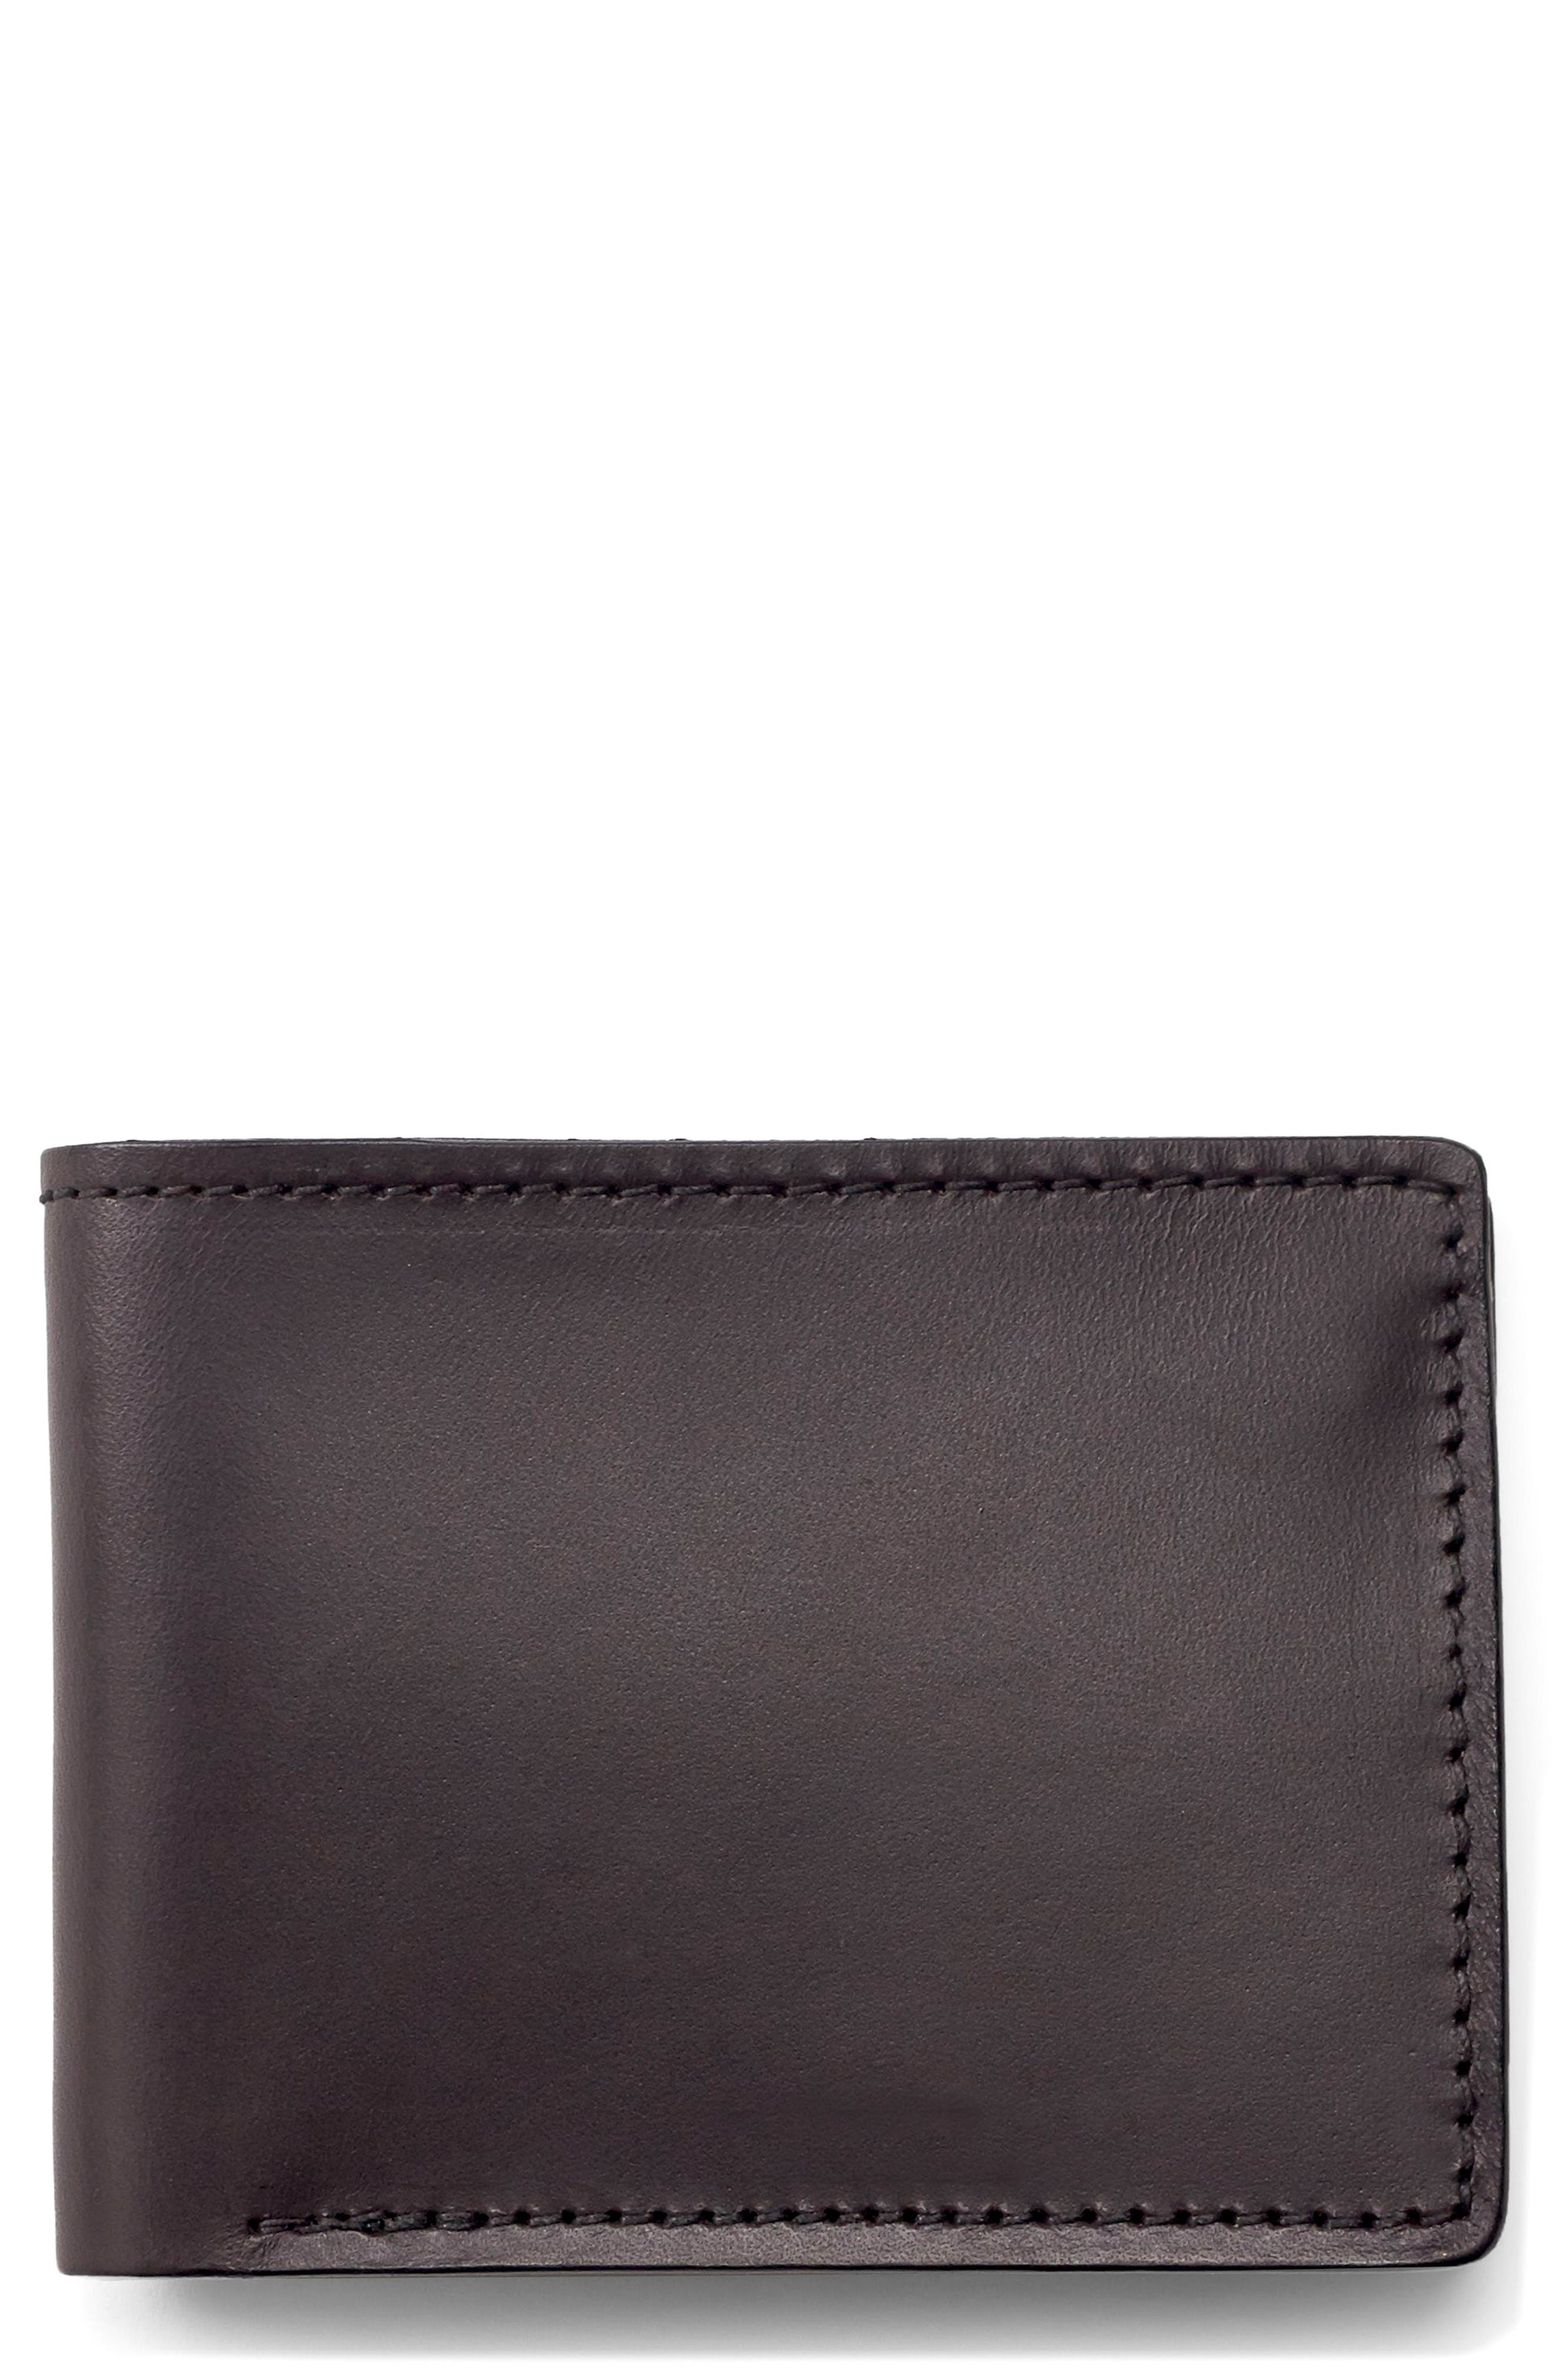 Main Image - Filson Leather Bifold Leather Wallet